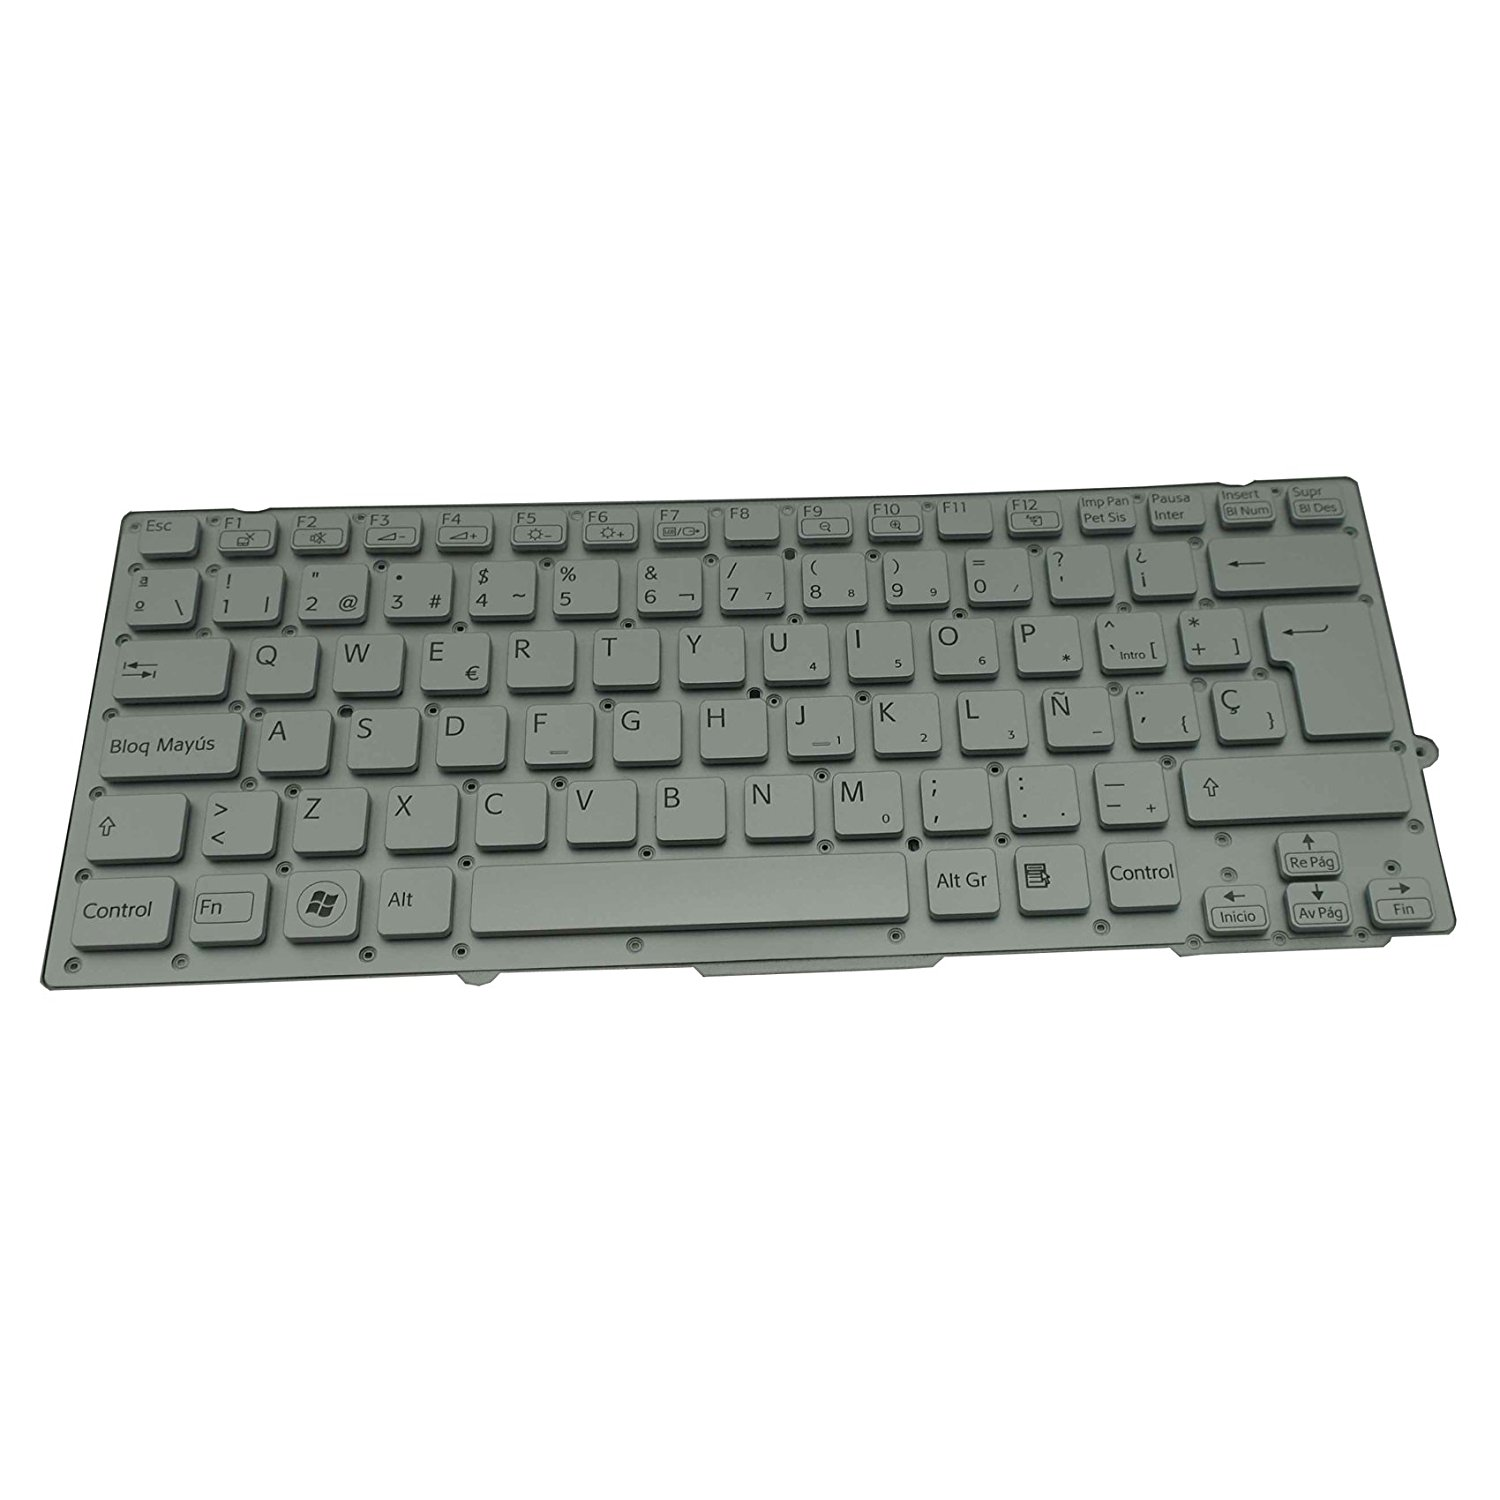 New US Laptop Replacement Keyboard for Sony SVF15 SVF1521C5E SVF15218CXW SVF15E SVF153A2TT SVF152C1JN SVF1521A6EW svf1521p1rw SVF1521T2EB SVF15328 SVF15414CXW SVF152C29L with C Shell Black